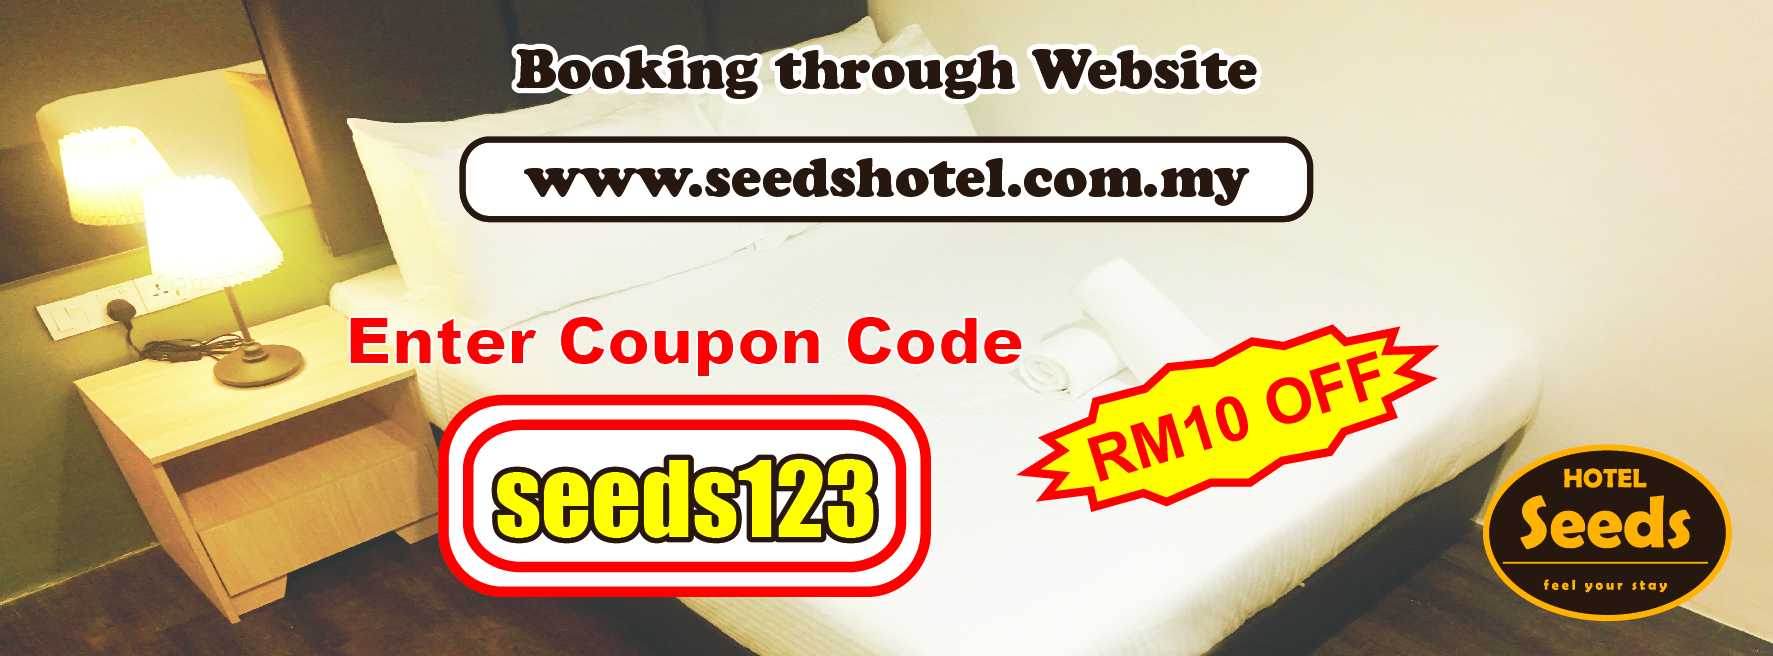 Promote-Website-Code-AP-851x315-01